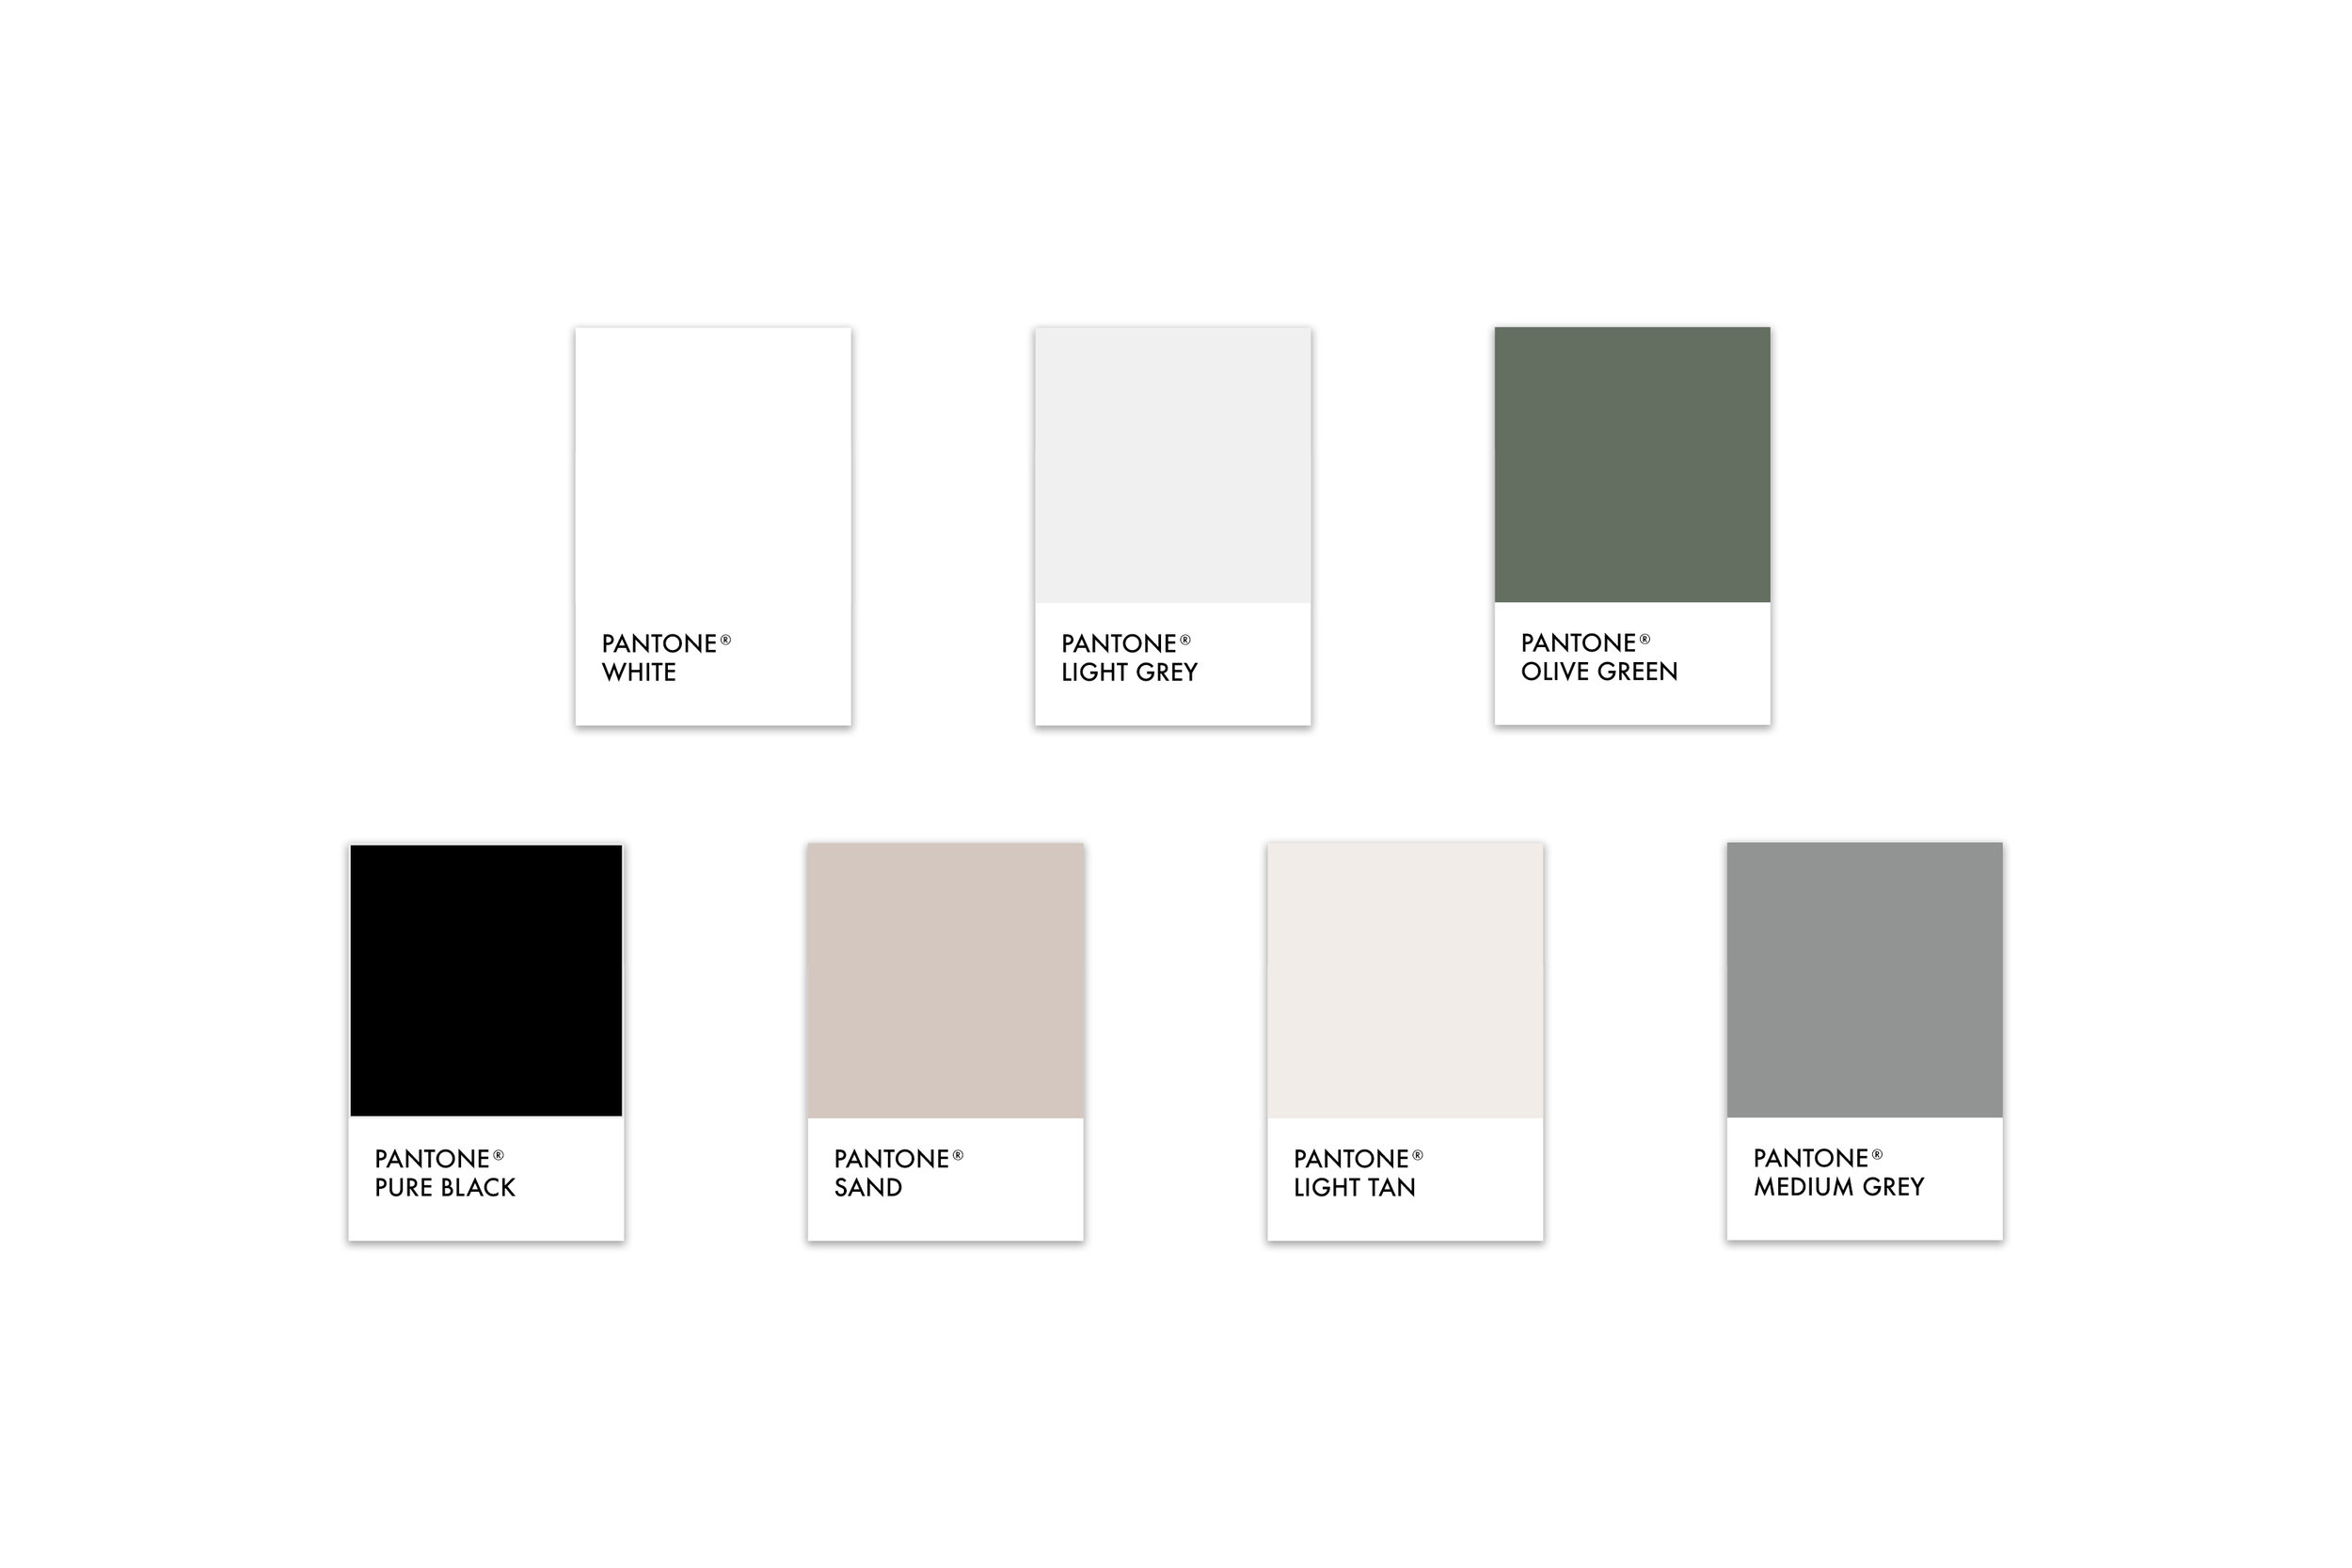 RATE Hotel Group Brand Design: Color palette with masculine neutrals and green   Reux Design Co.   Boutique Branding Studio for Holistic and Conscious Small Businesses